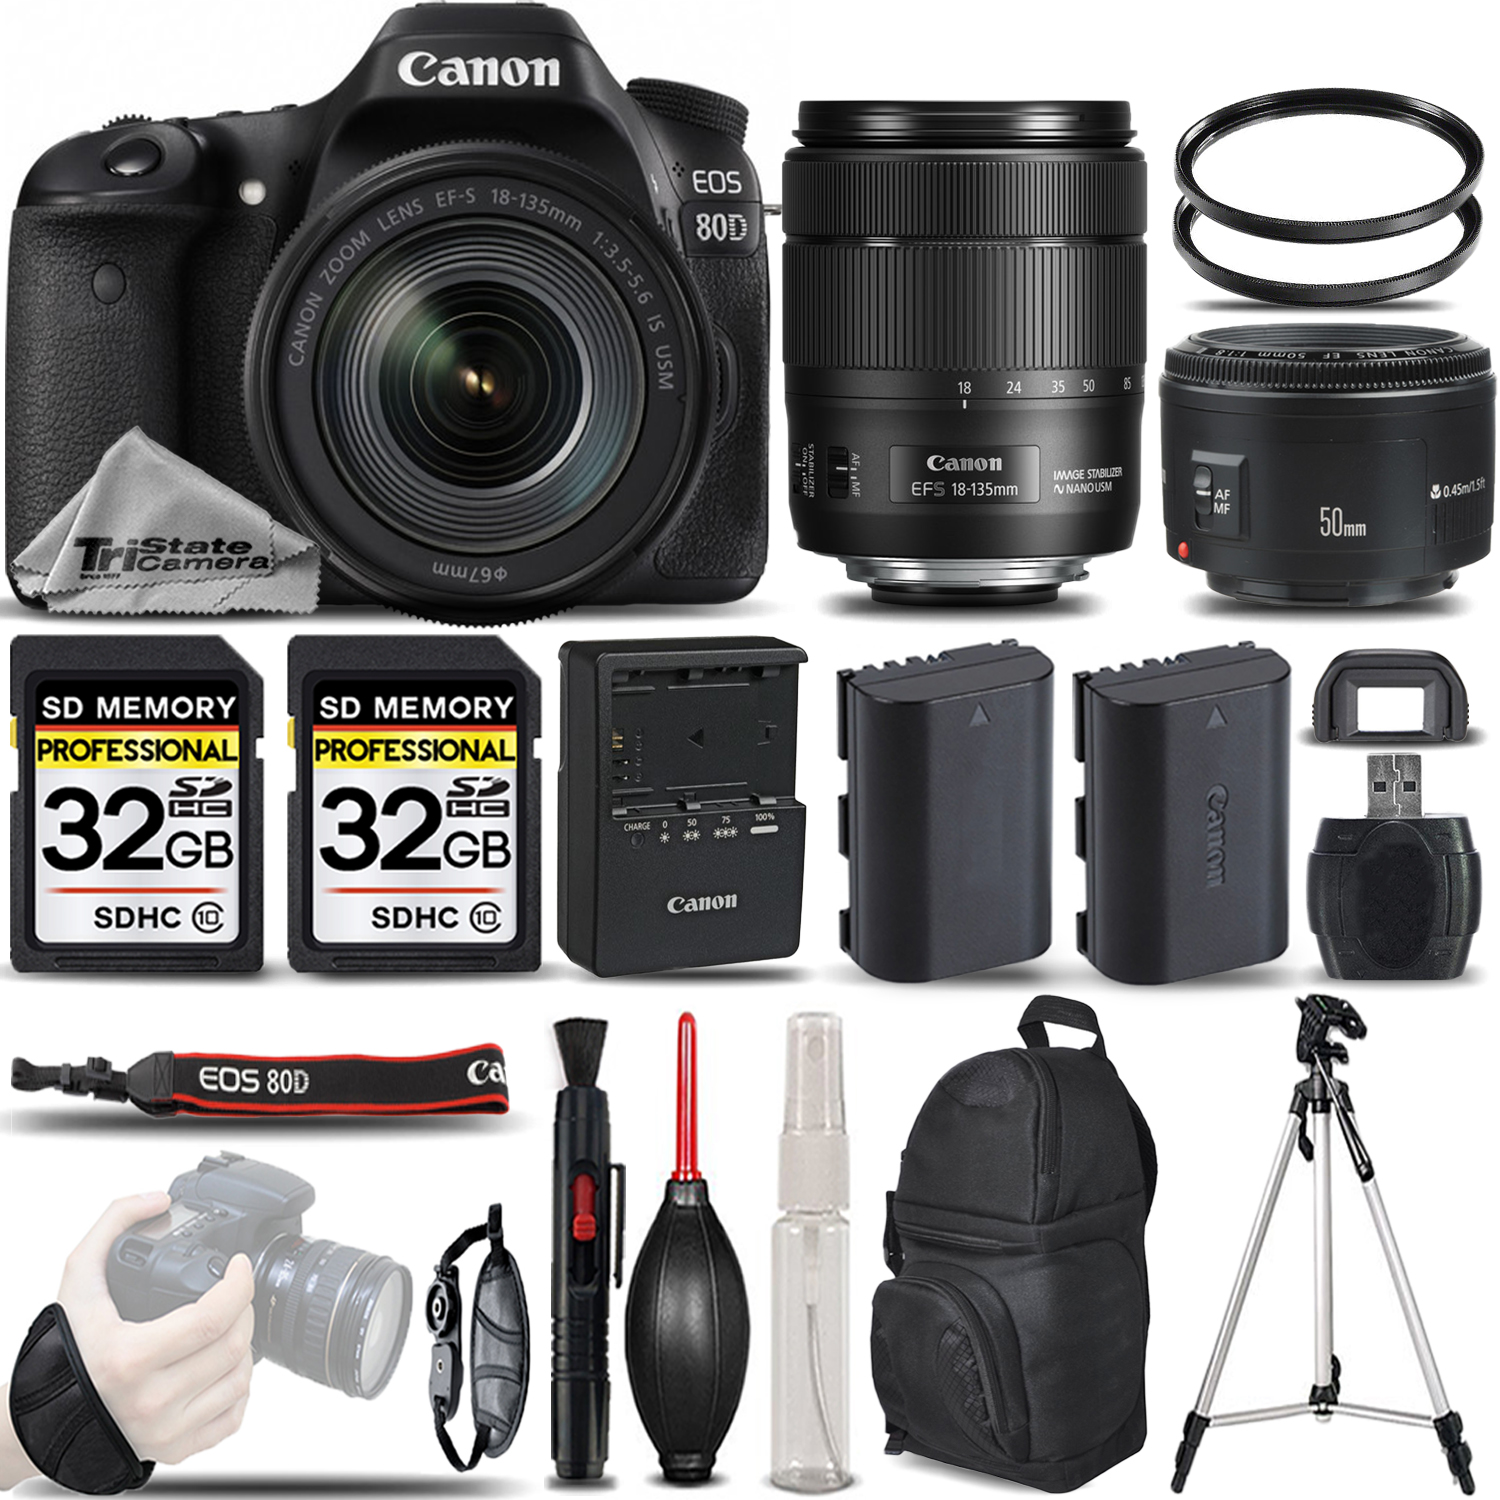 EOS 80D DSLR Camera + 18-135mm IS USM + 50mm 1.8 LENS + EXT BATT -64GB KIT *FREE SHIPPING*